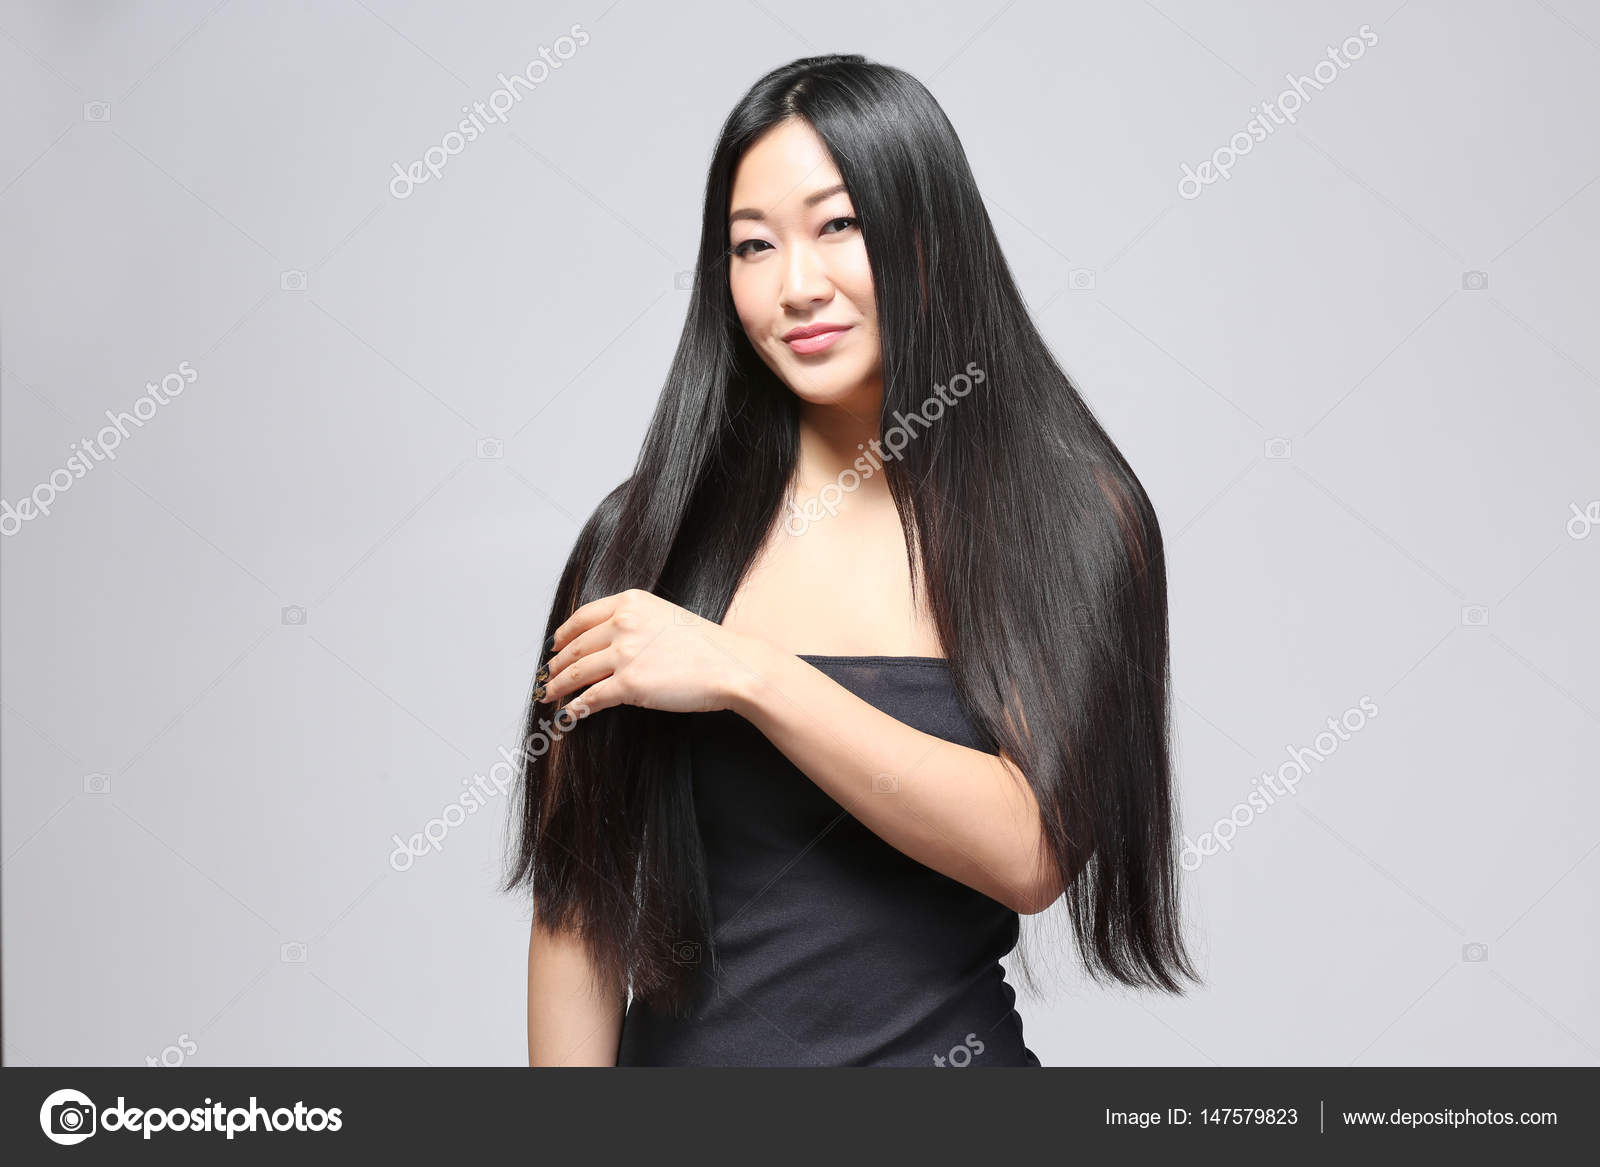 Asian Woman With Long Hair Stock Photo C Belchonock 147579823